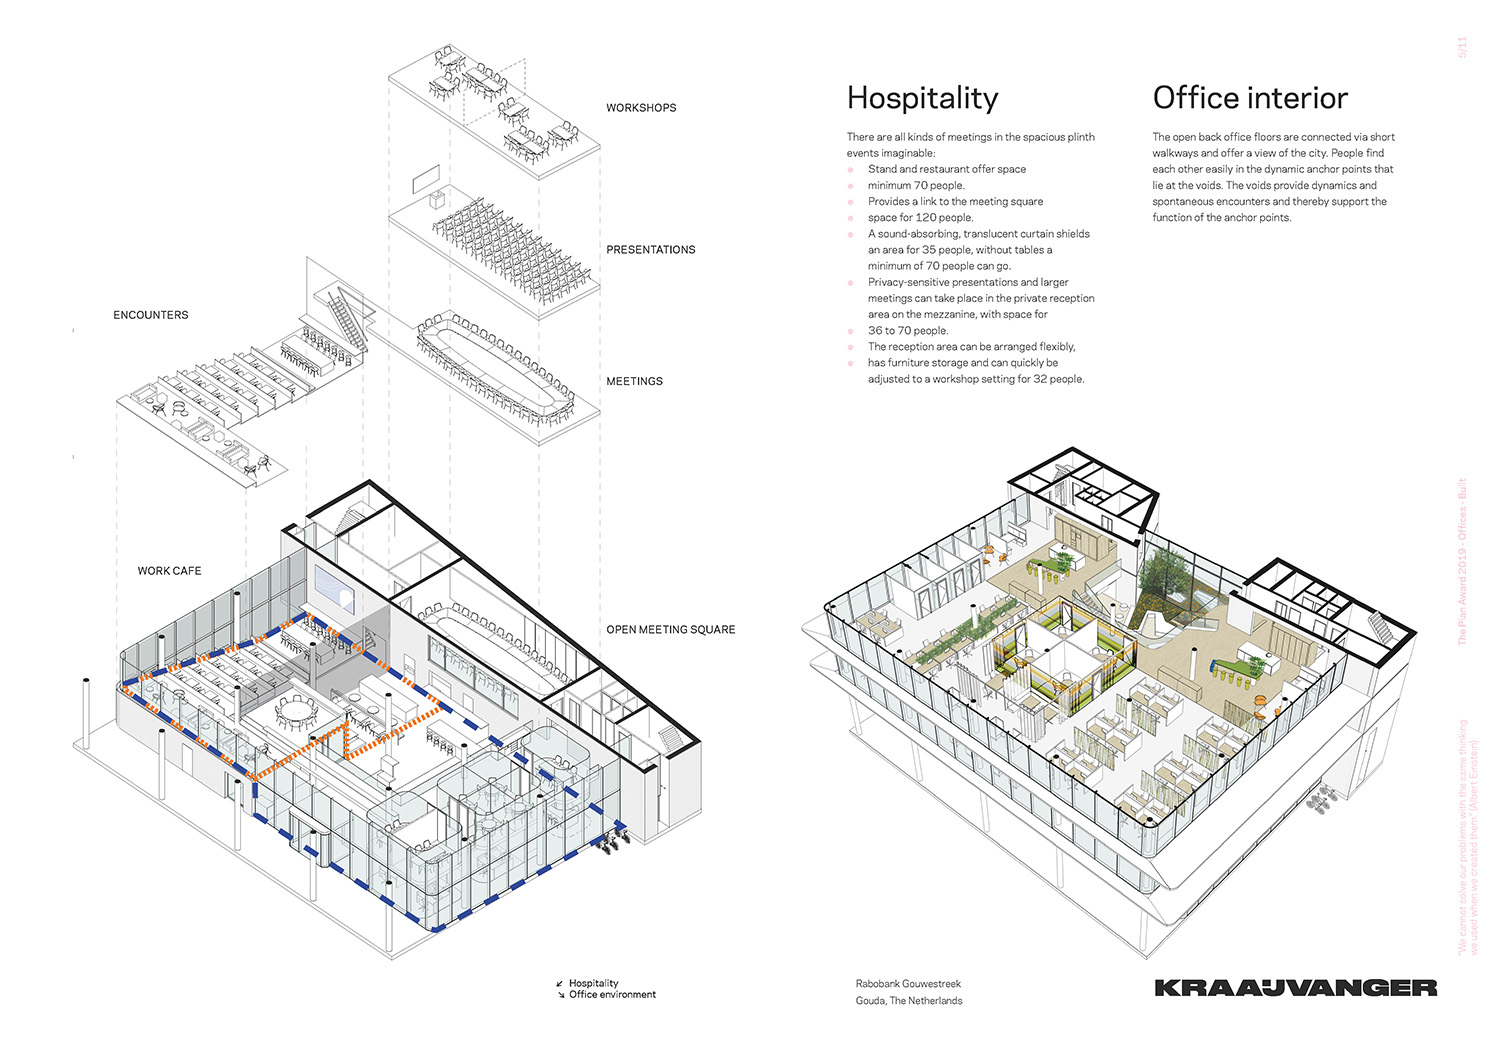 Hospitality and office schemes © Kraaijvanger Architects}